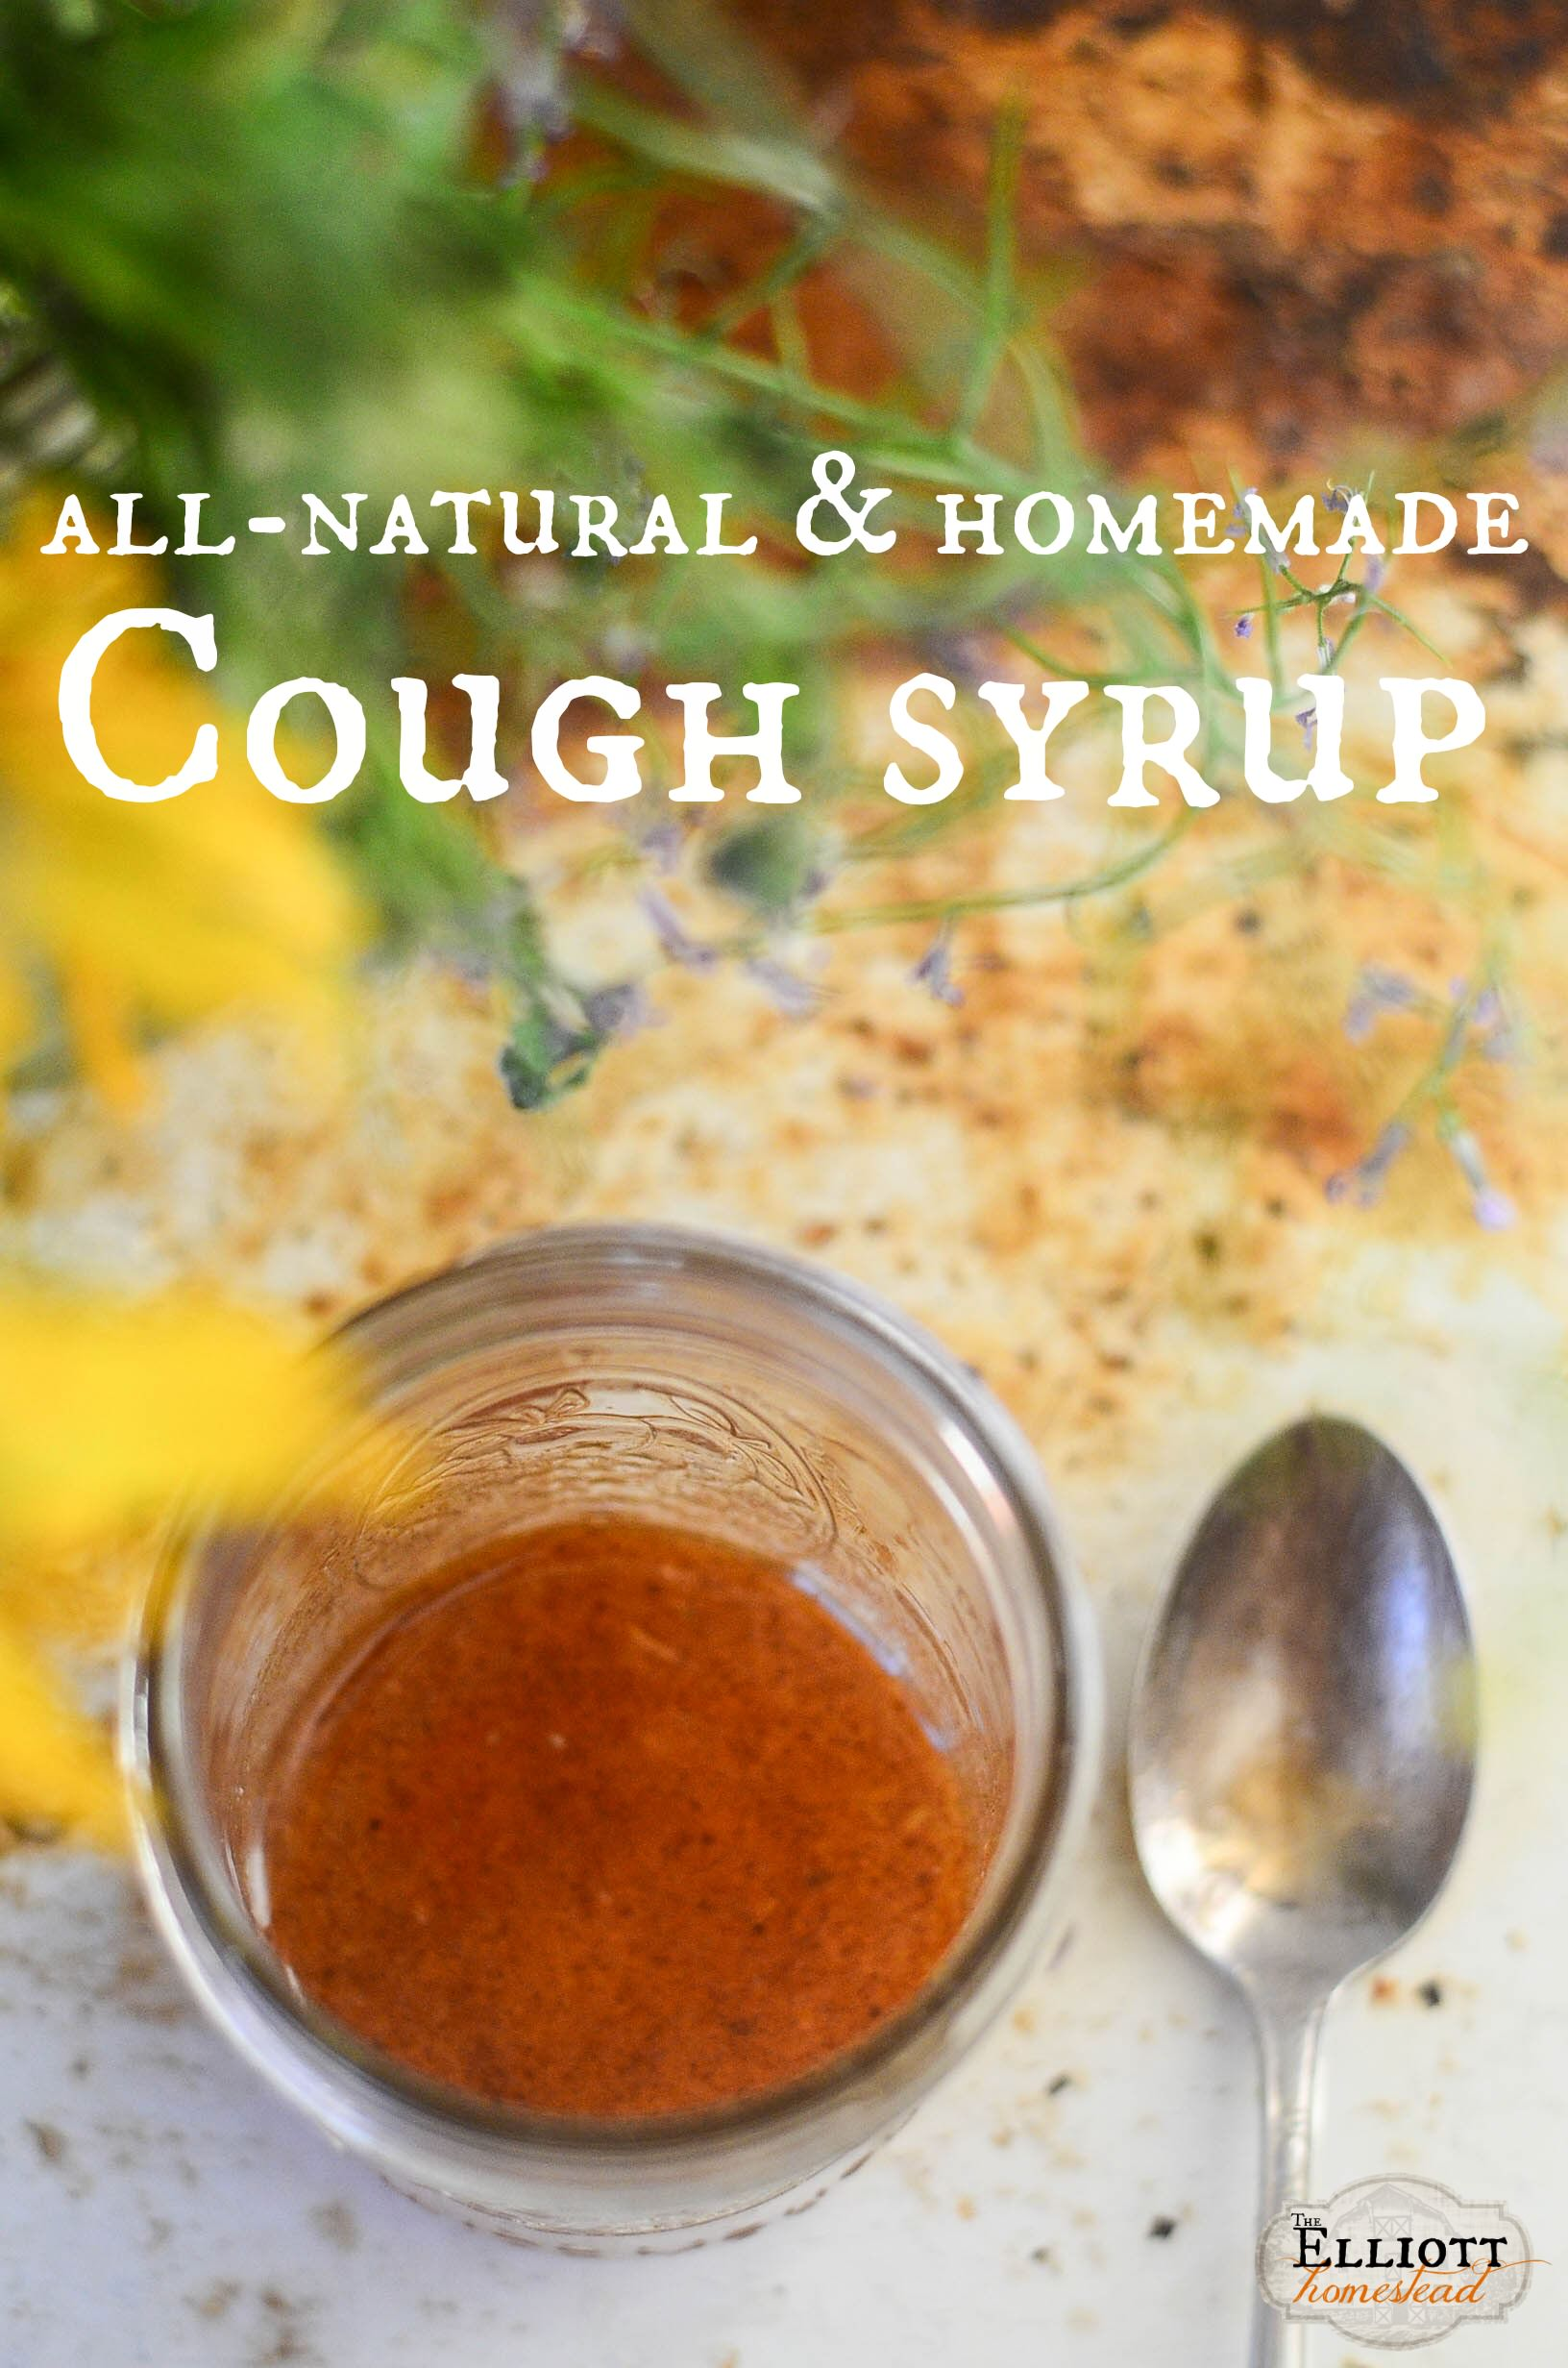 Dare I say, I sort of wish I'd get sick more often! Homemade Cough Syrup ...